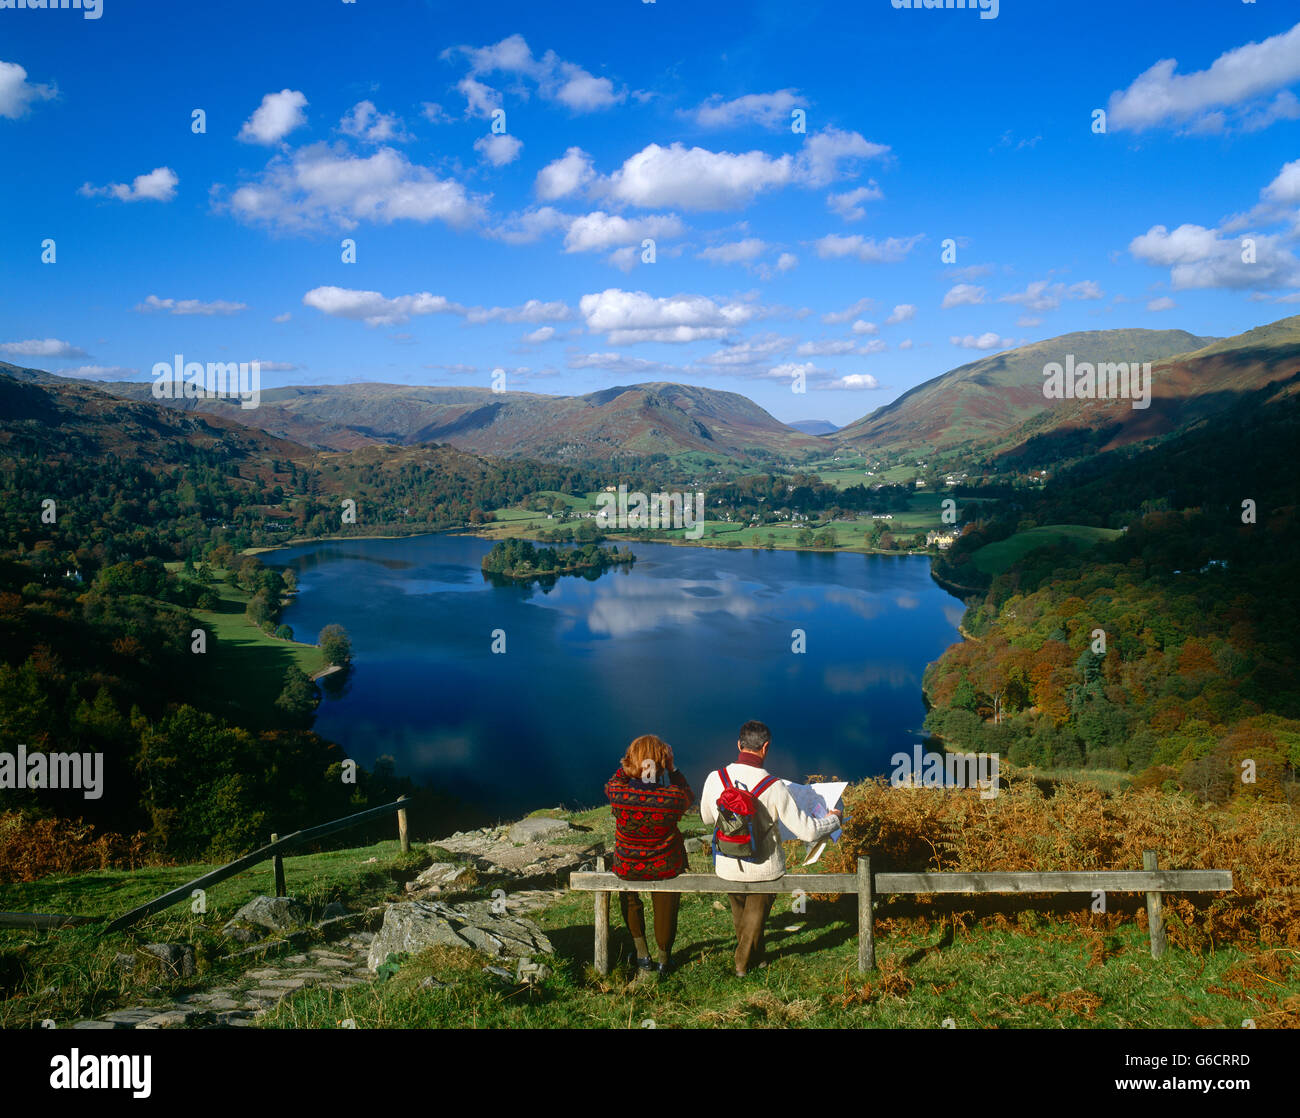 Ramblers viewing Grasmere in the Lake District, Cumbria, England, UK - Stock Image